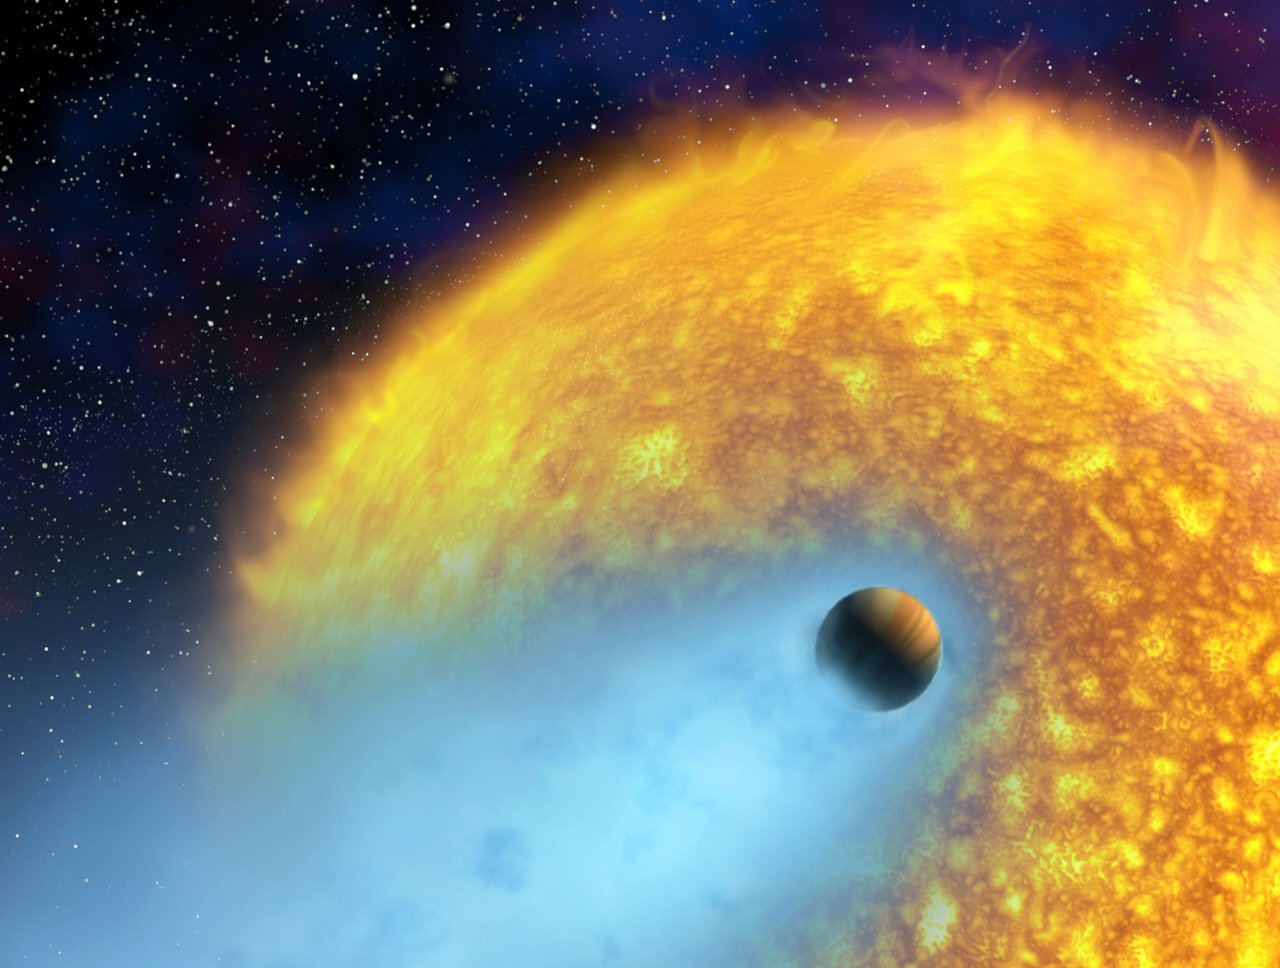 Study finds stellar flares can lead to the diminishment of a planet's habitability